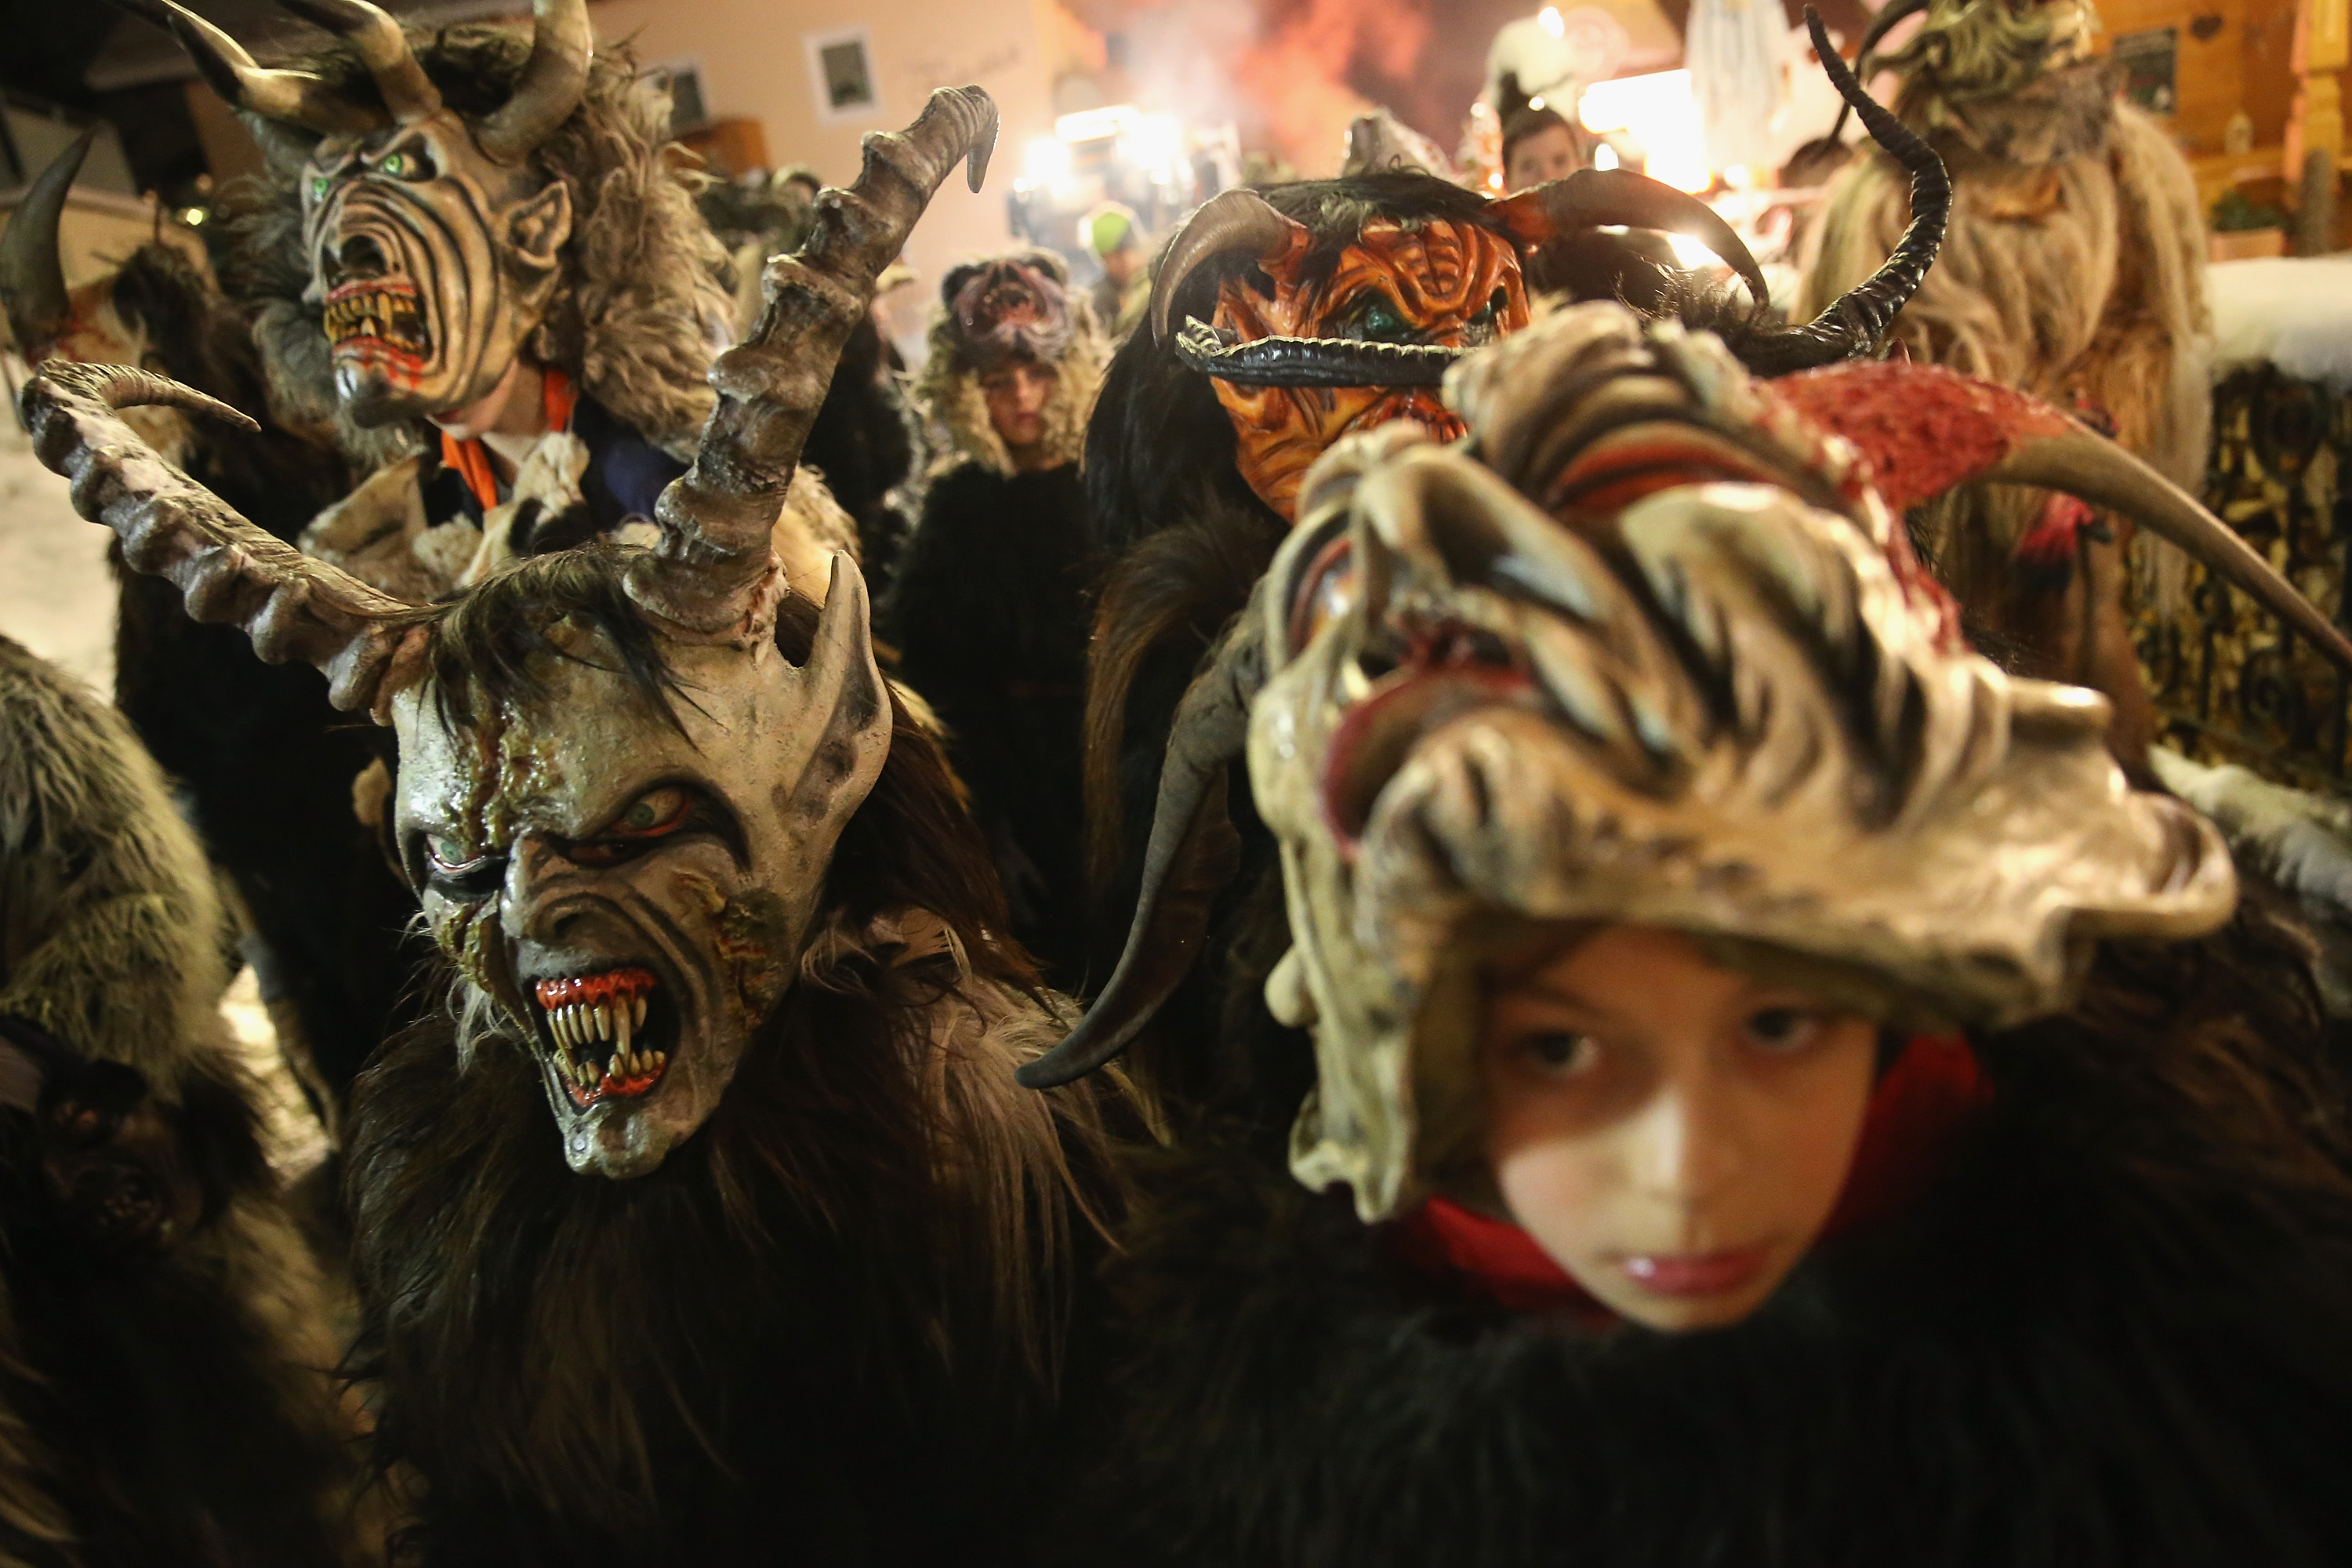 Krampus Creatures Parade In Search Of Bad Children